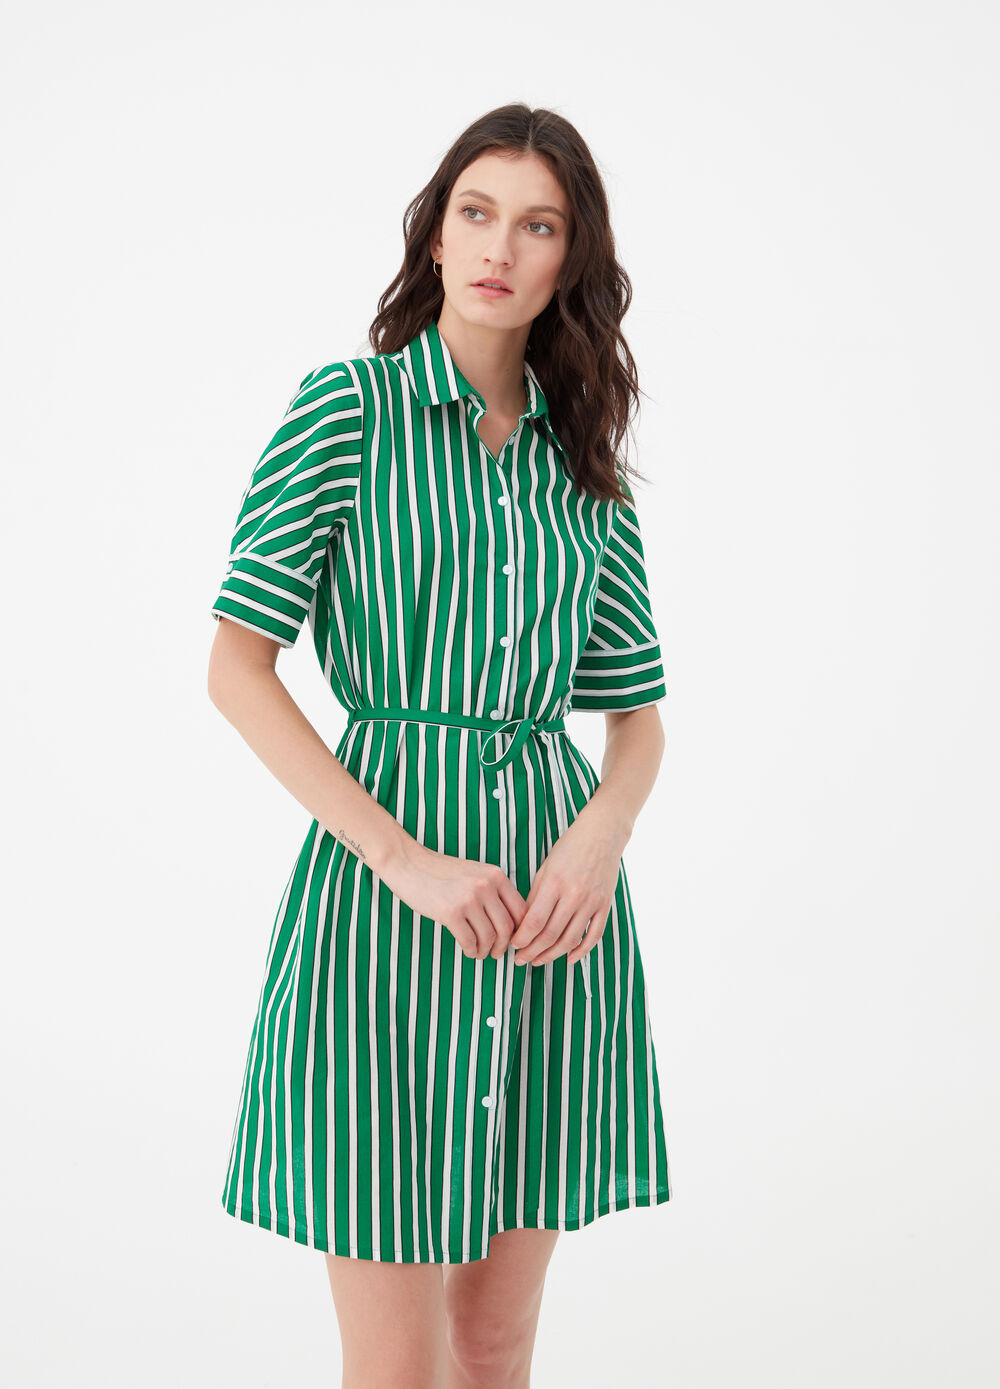 Striped dress in 100% cotton with short sleeves